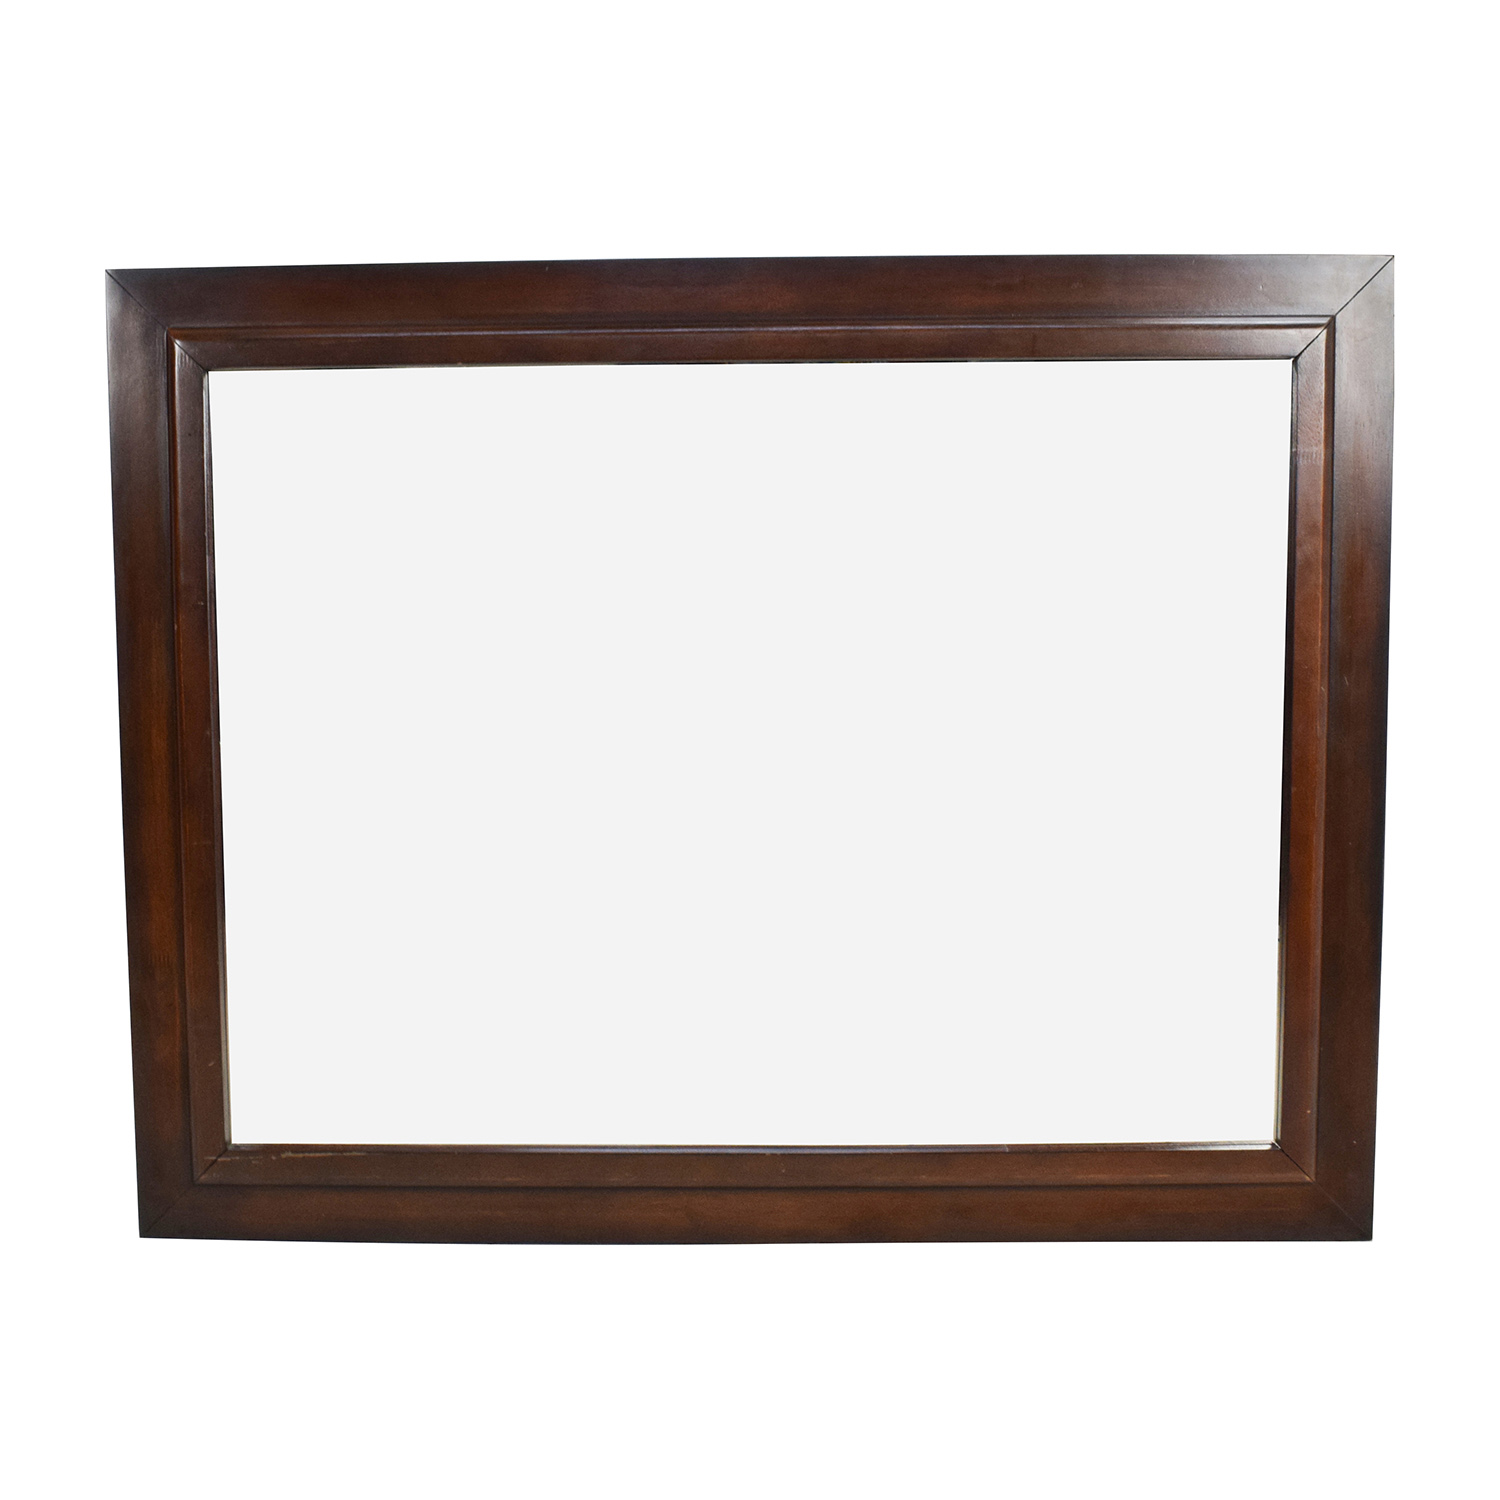 Large Square Wood Framed Wall Mirror for sale